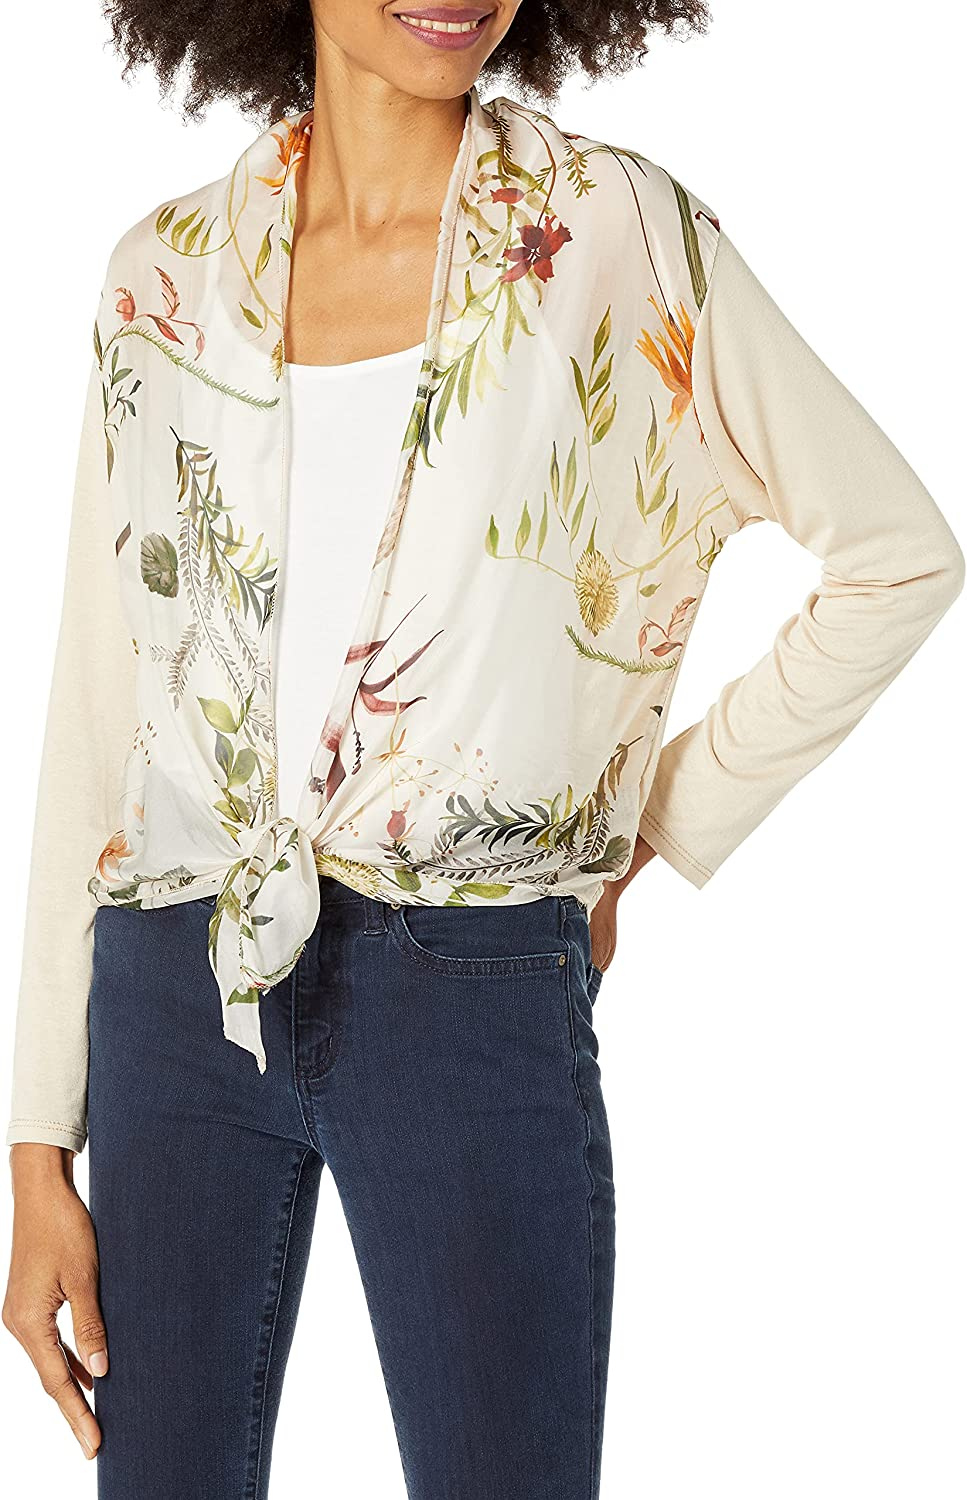 M Made in Italy Women's Floral Front Open Cardigan